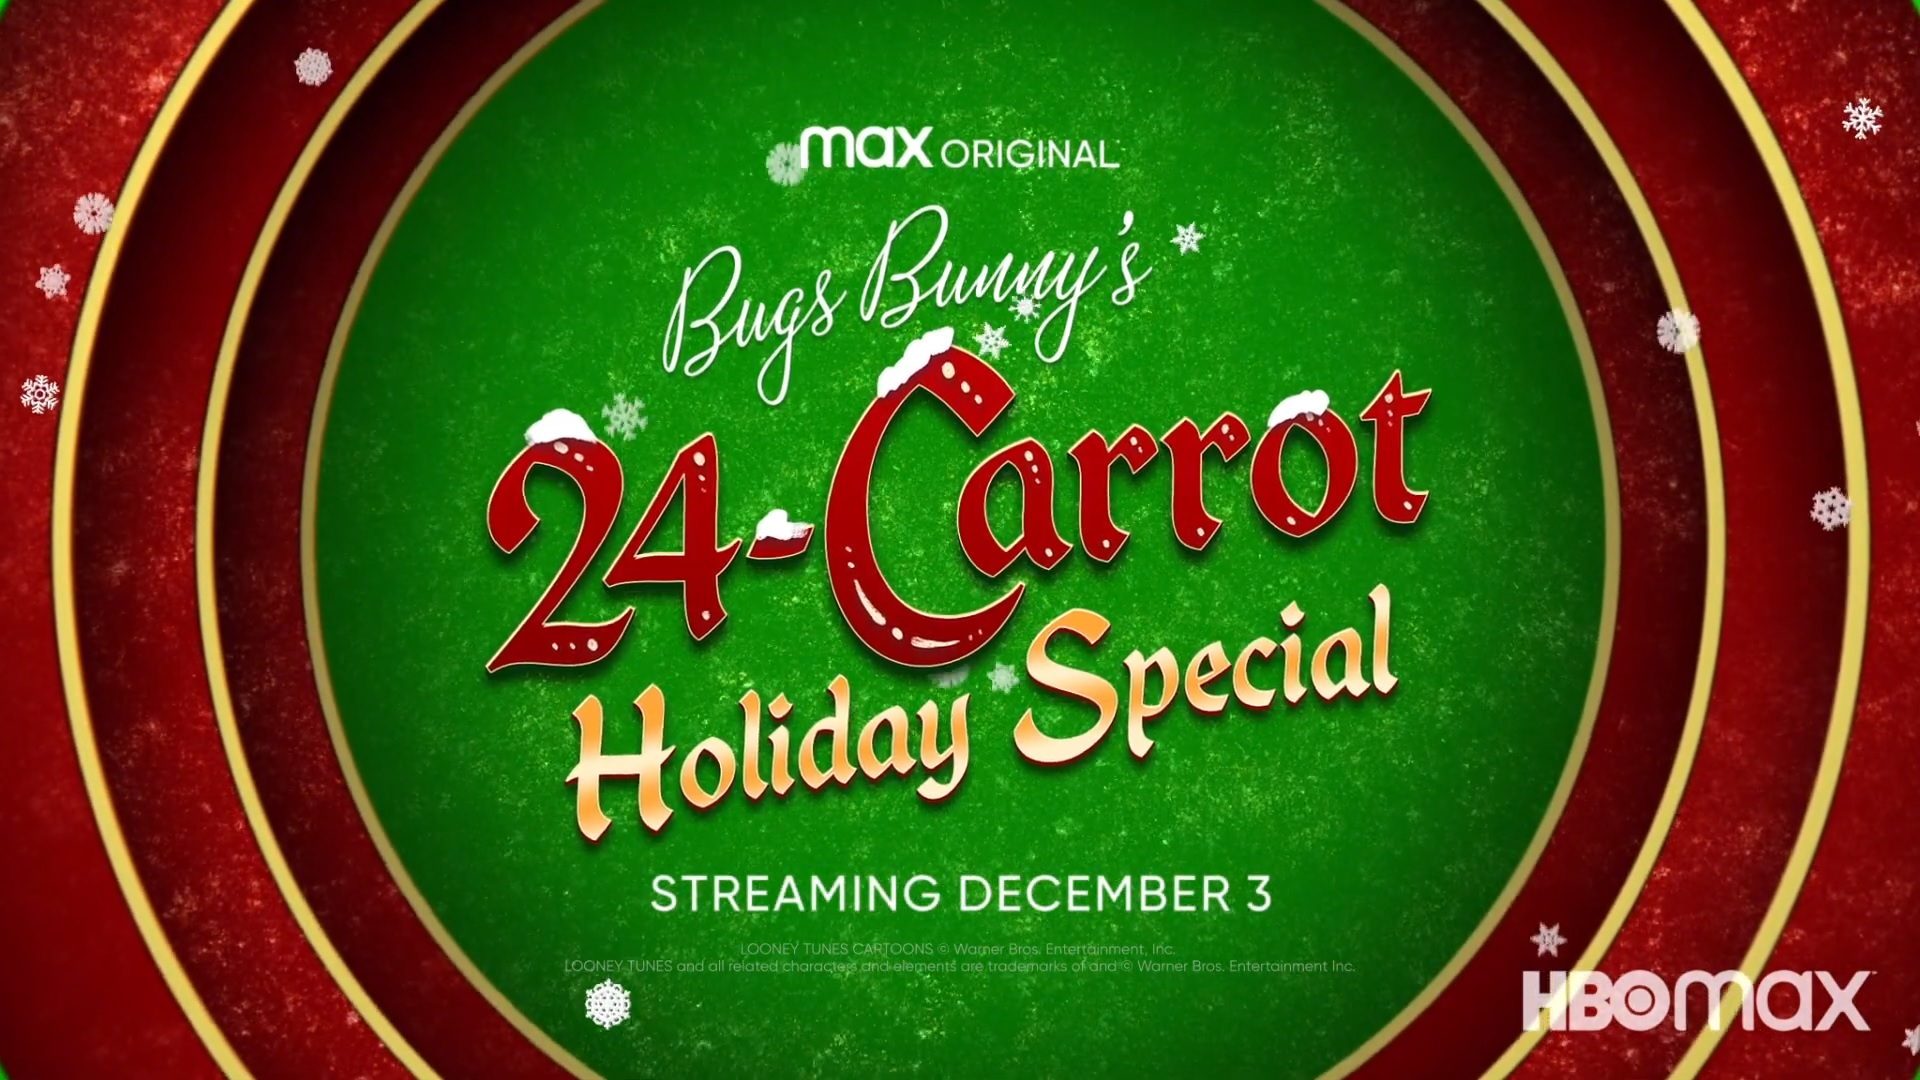 Bugs Bunny's 24-Carrot Holiday Special